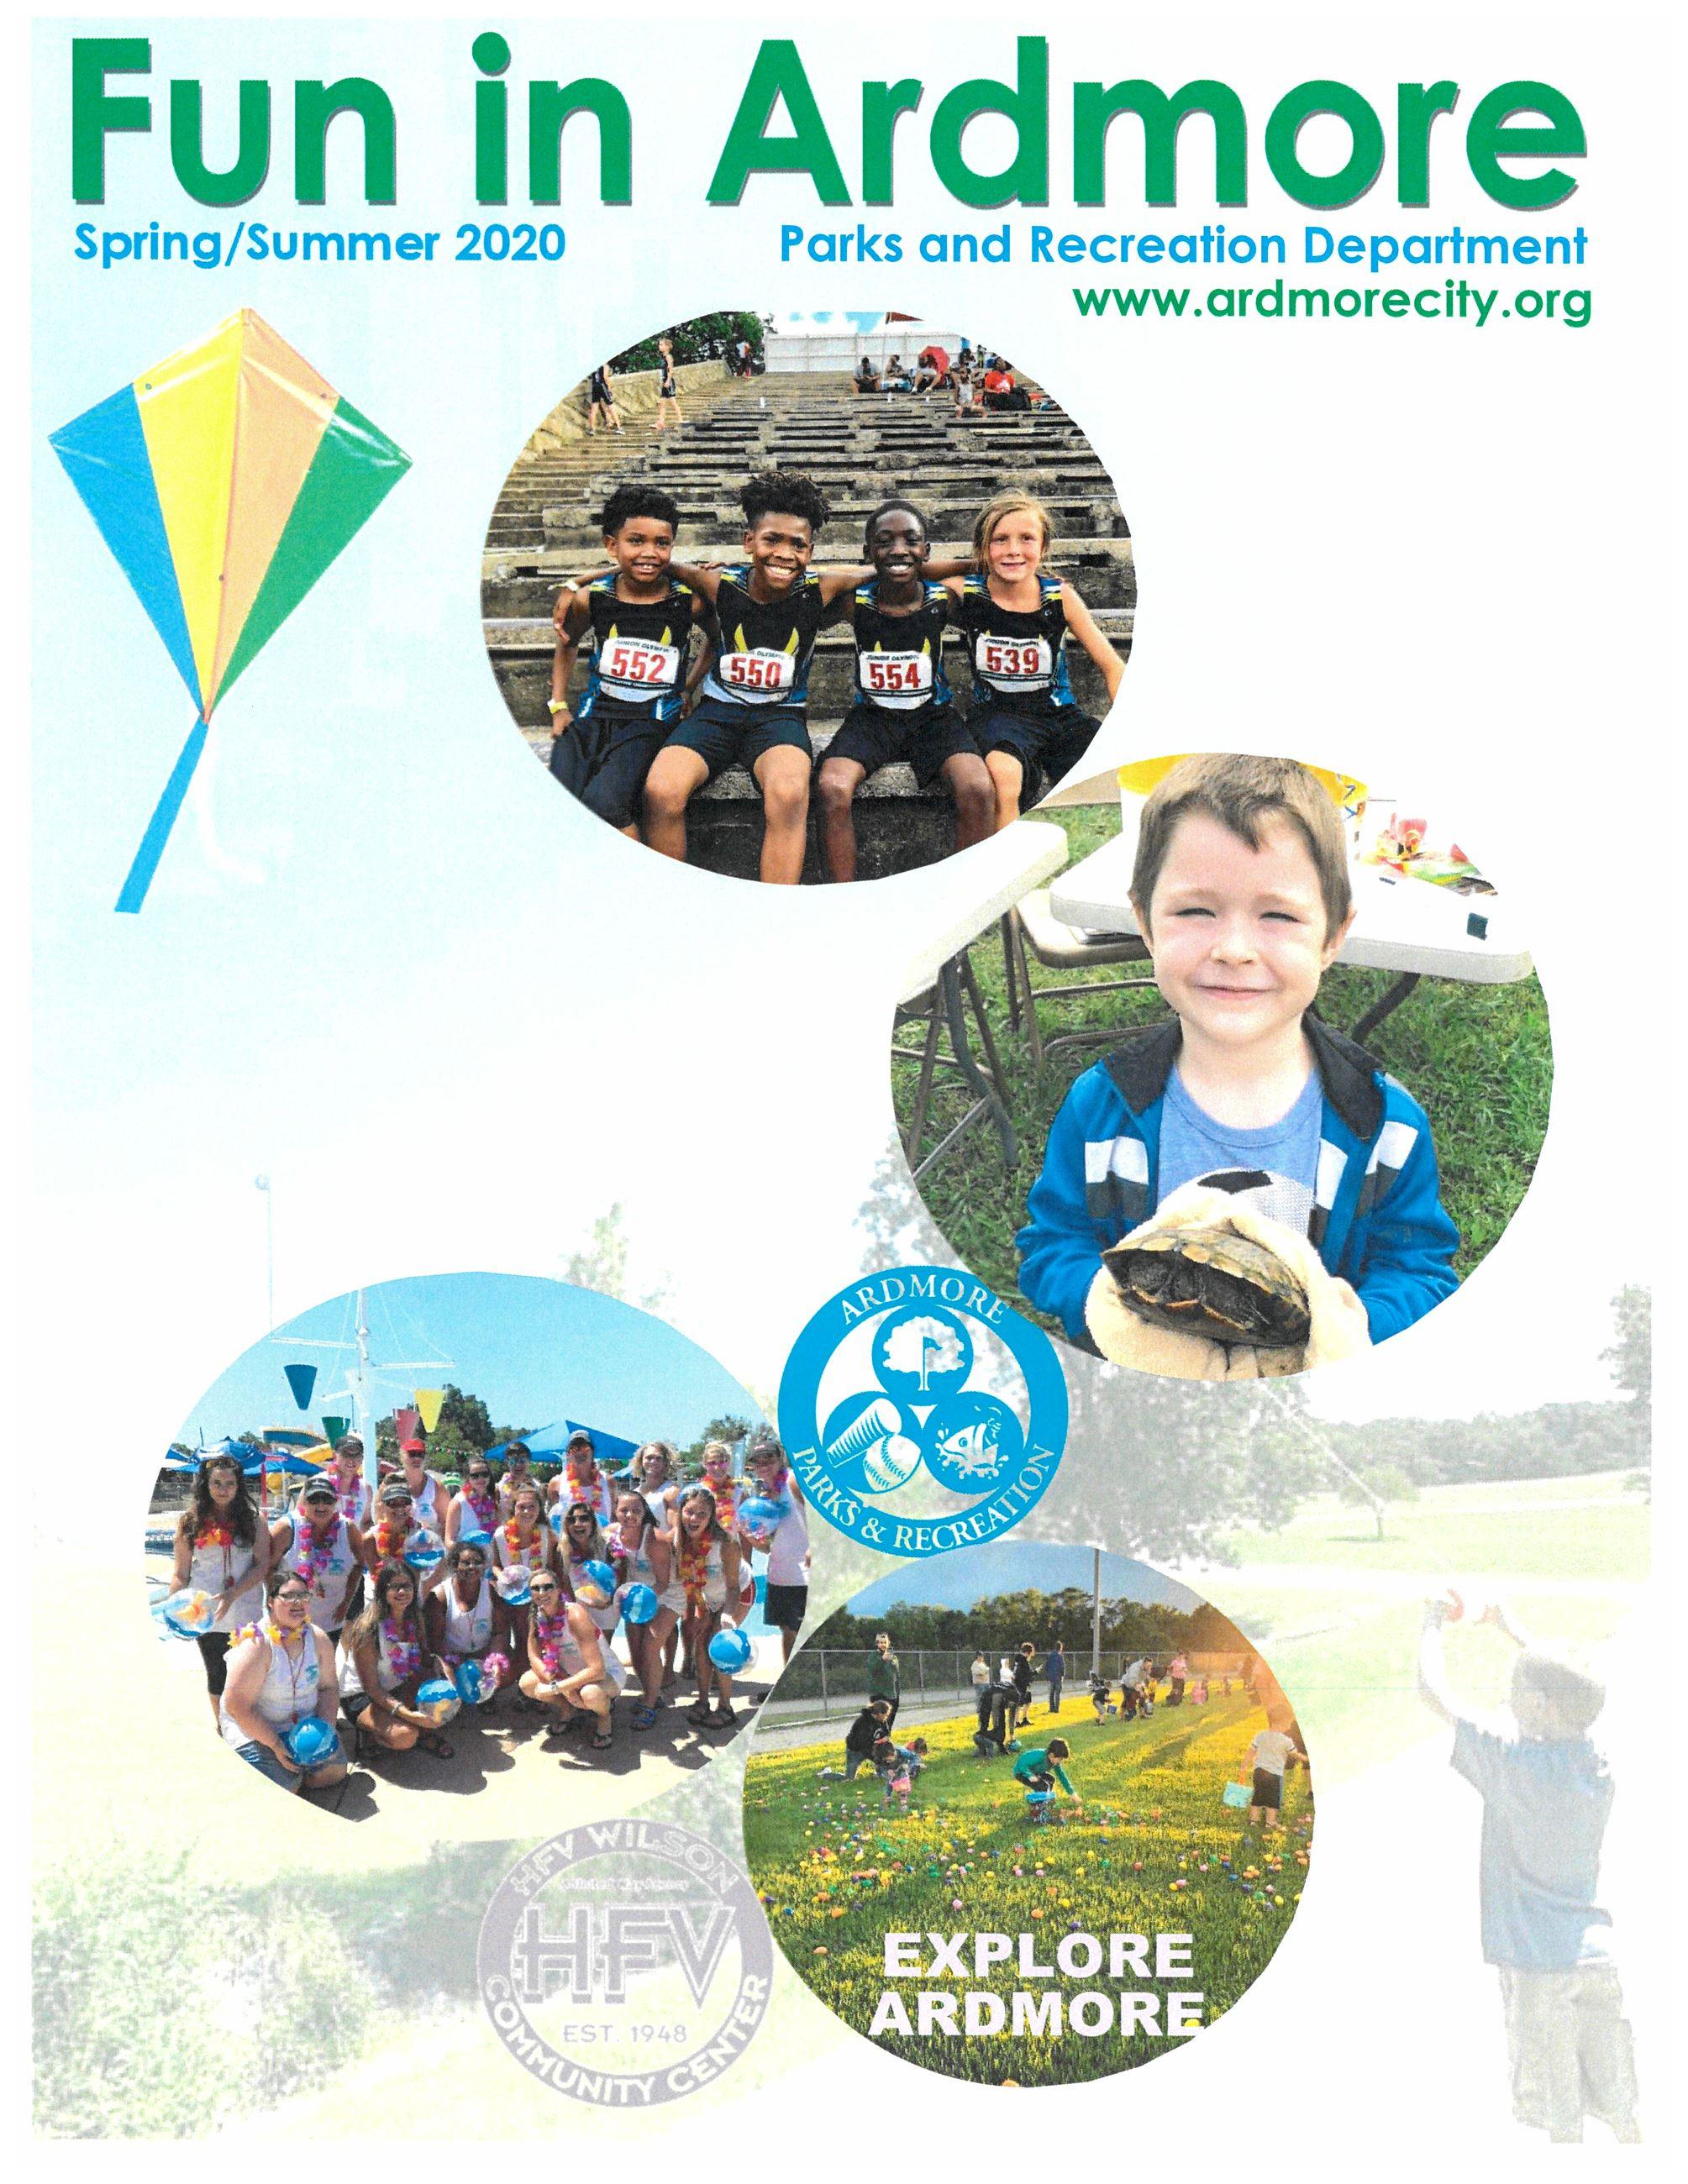 2020 spring brochure cover showing children and summer activities